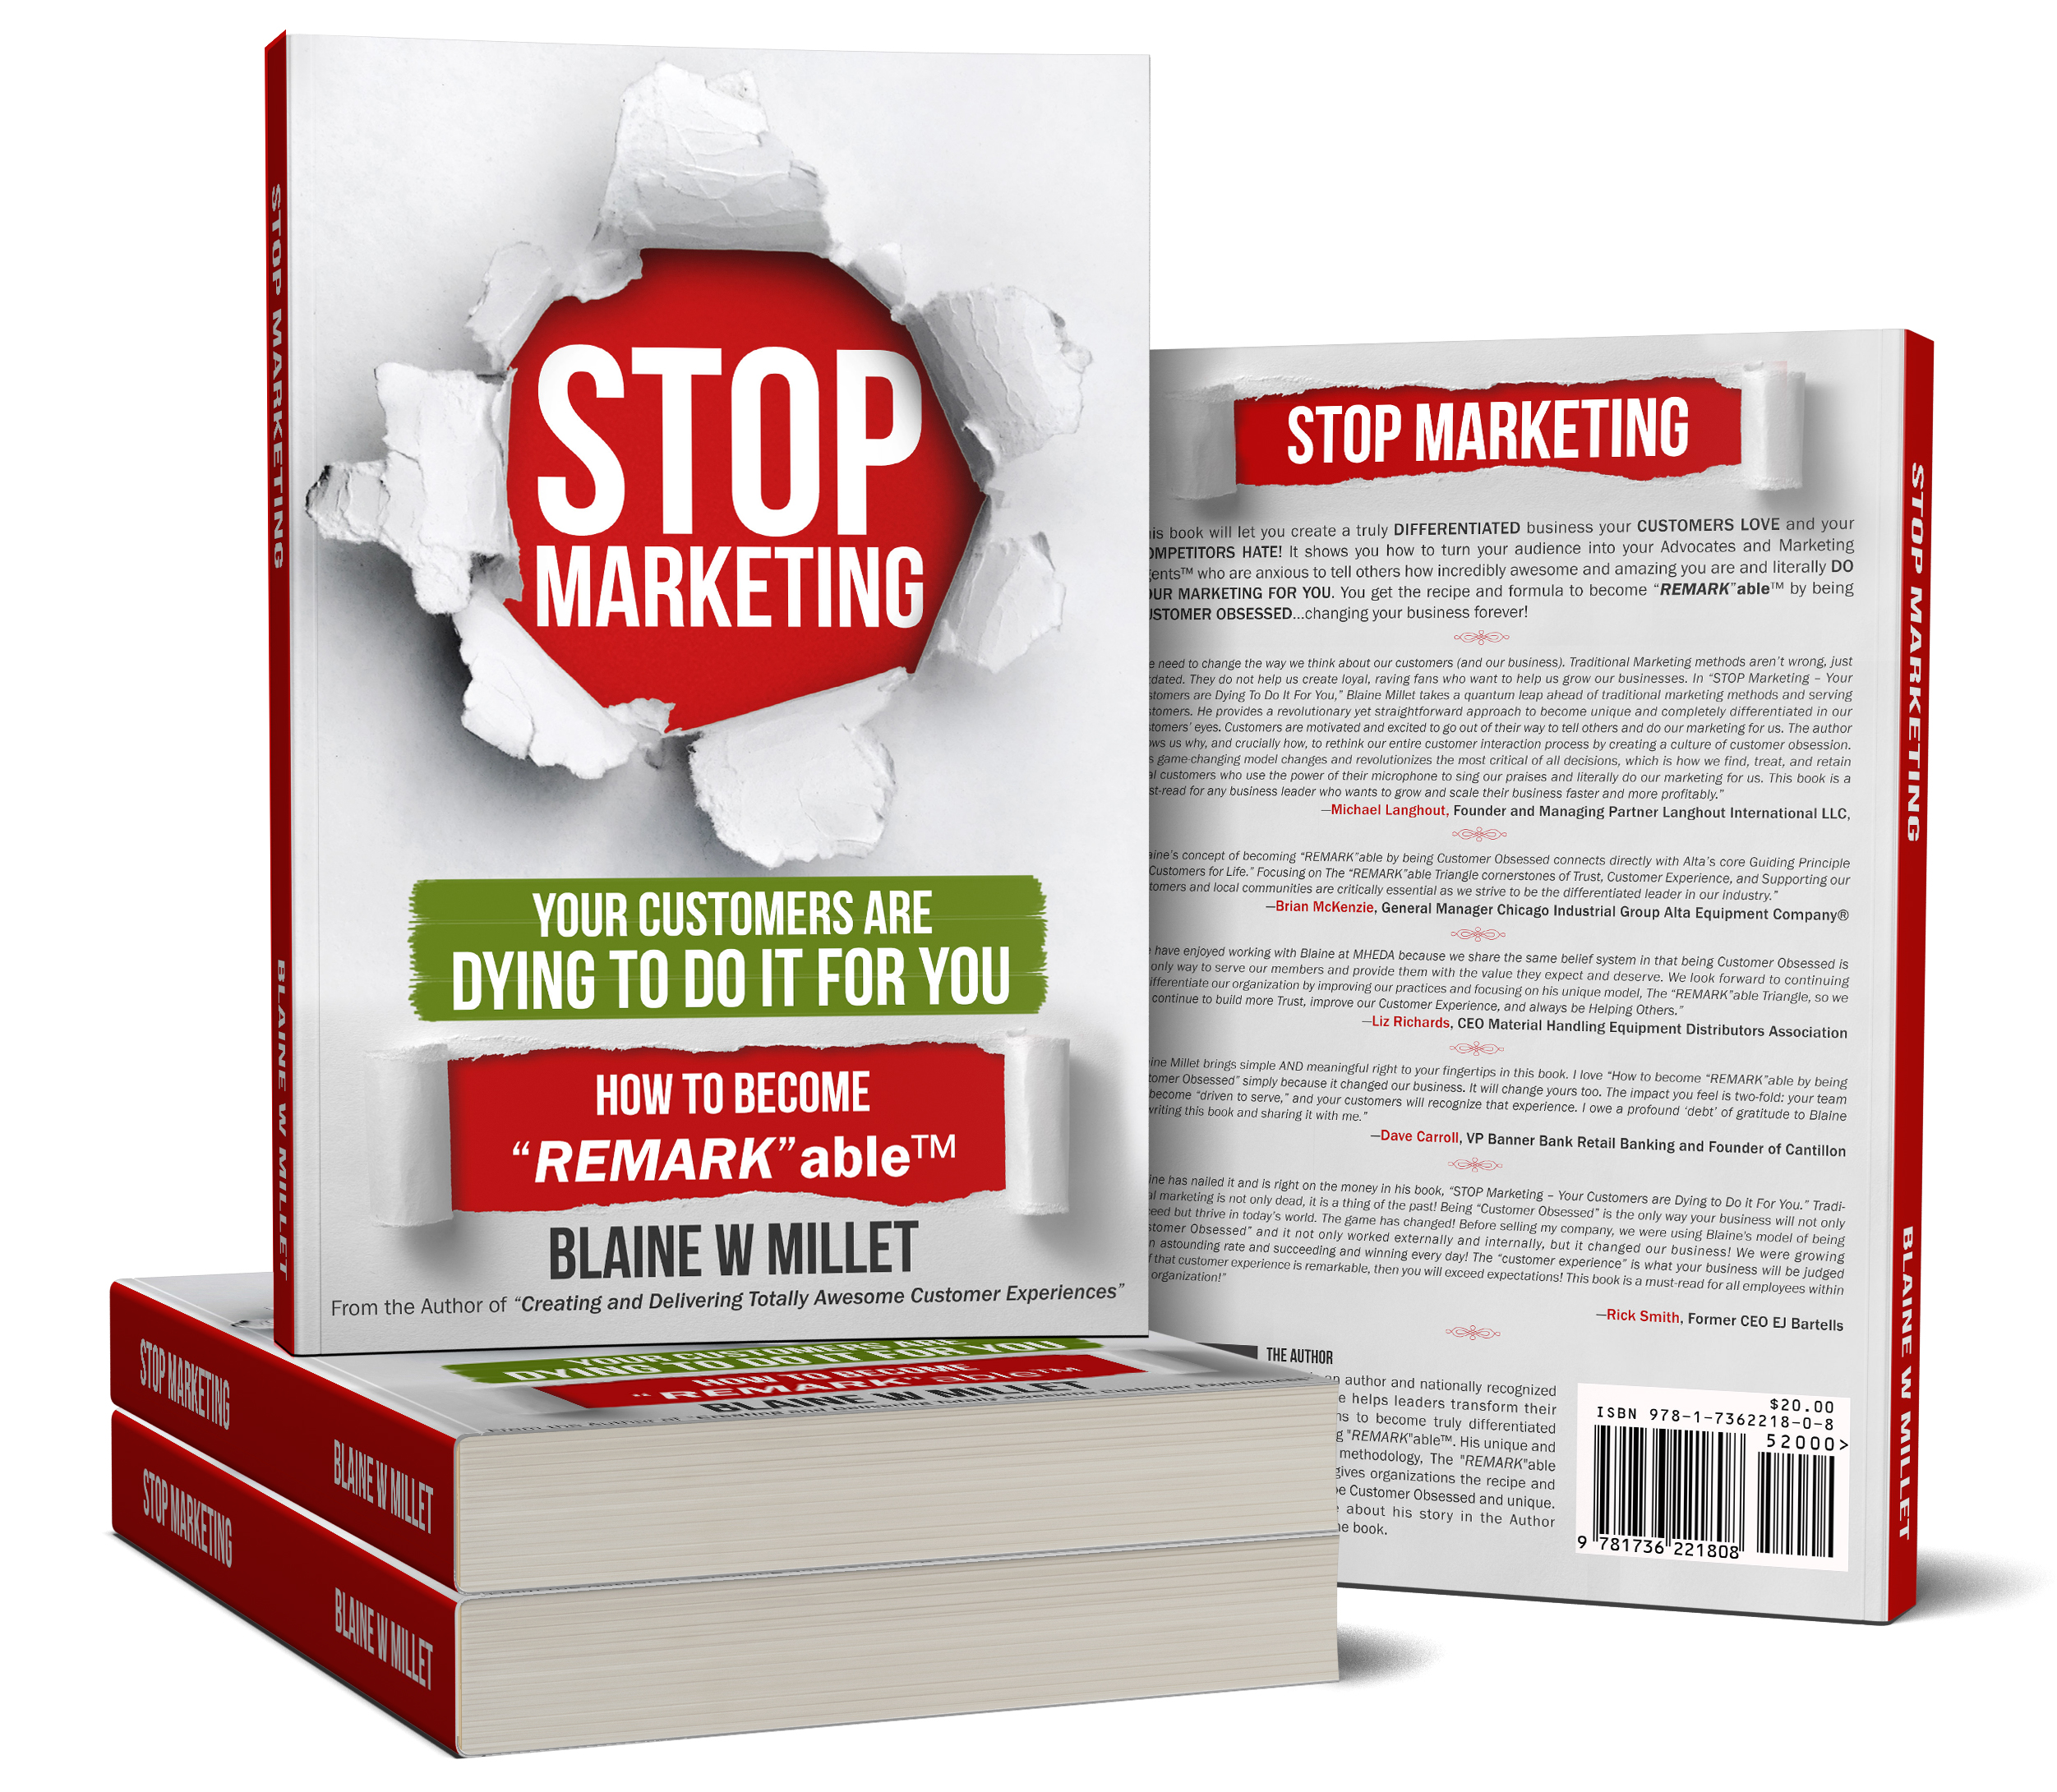 """STOP Marketing - Your Customers Are Dying To Do It For YOU - How to become """"REMARK""""ableTM"""